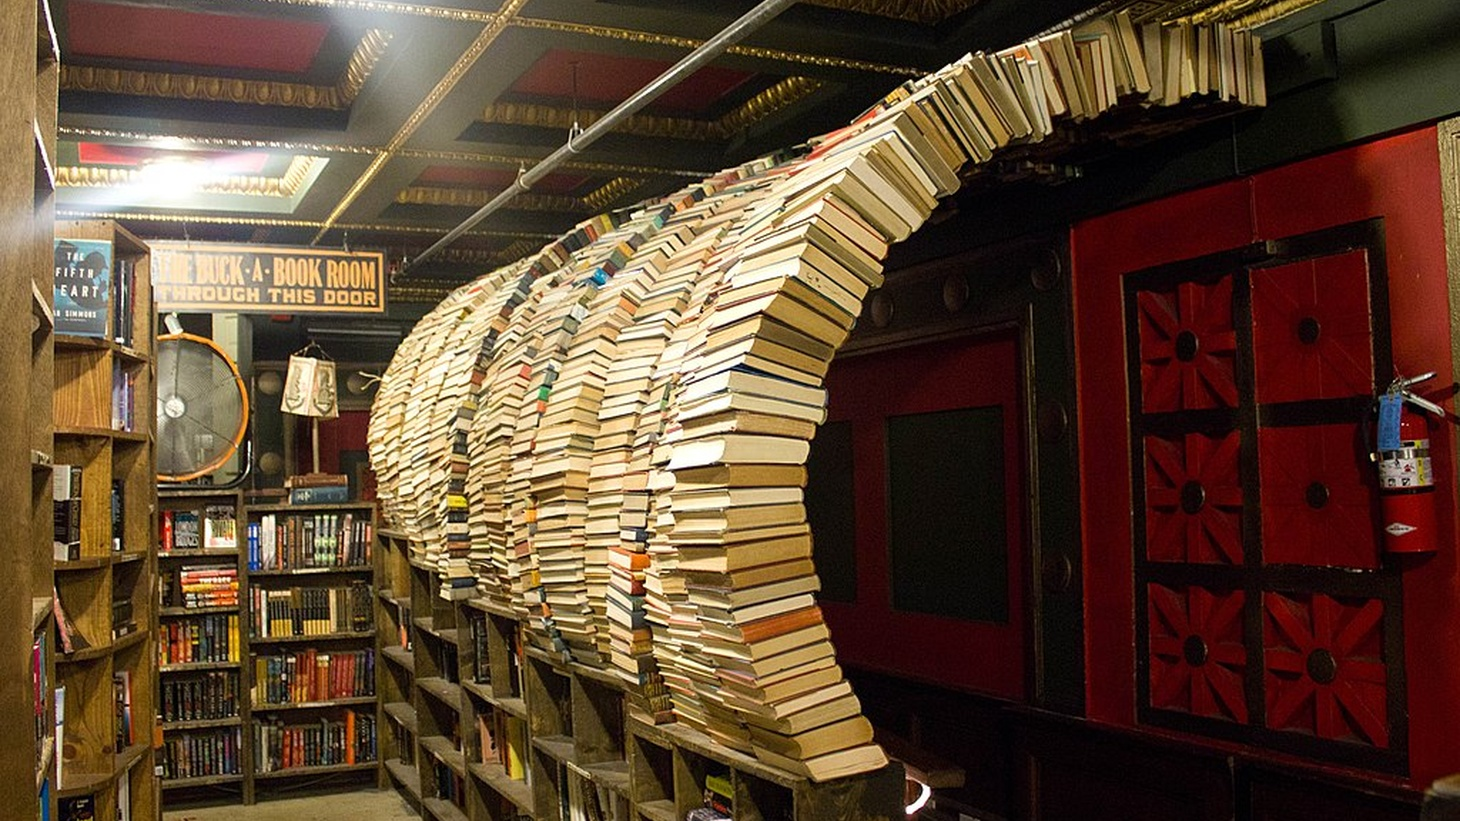 After losing money and shutting down during the pandemic, The Last Bookstore in downtown LA is now back open for in-person shopping at limited capacity. Everyone inside the store must wear masks.